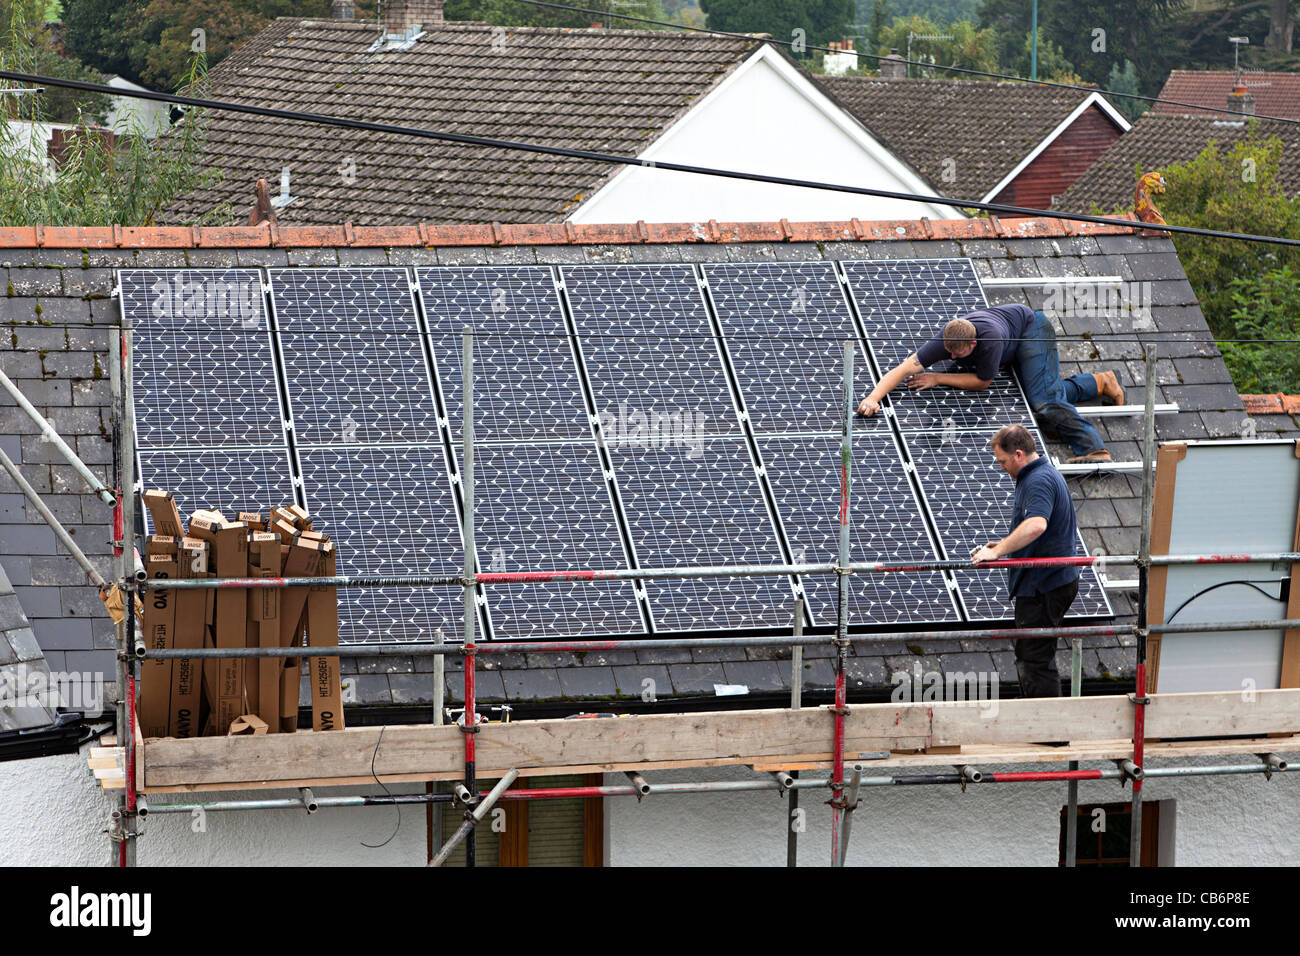 Two men fitting solar panels to house rooftop in village Wales UK - Stock Image